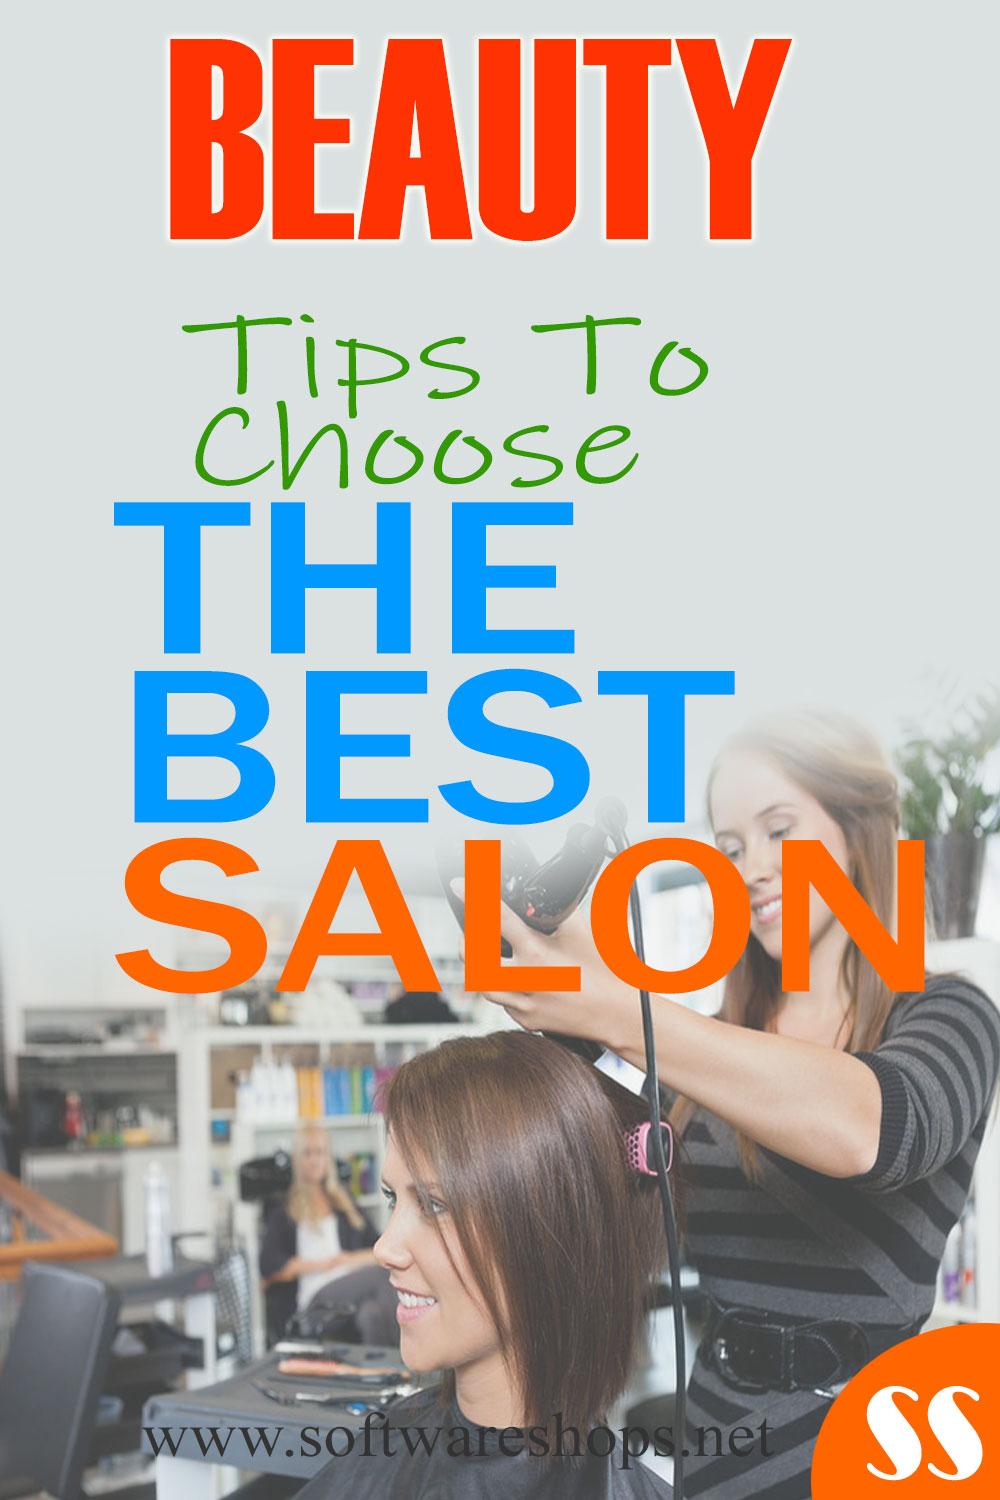 tips to choose the best salon